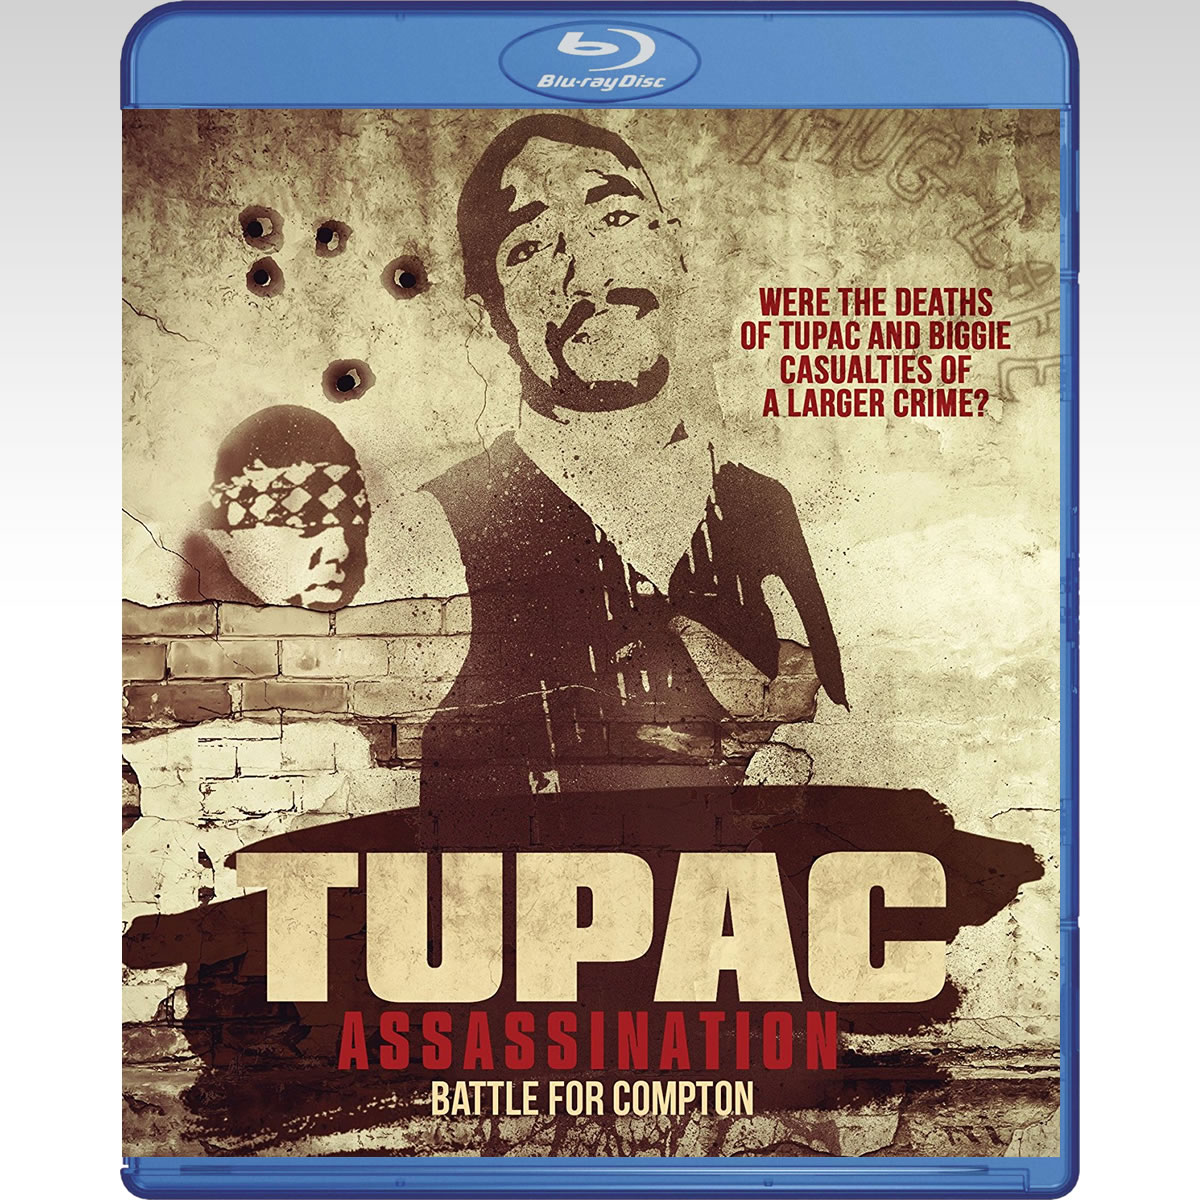 TUPAC - ASSASSINATION III: BATTLE FOR COMPTON (BLU-RAY)